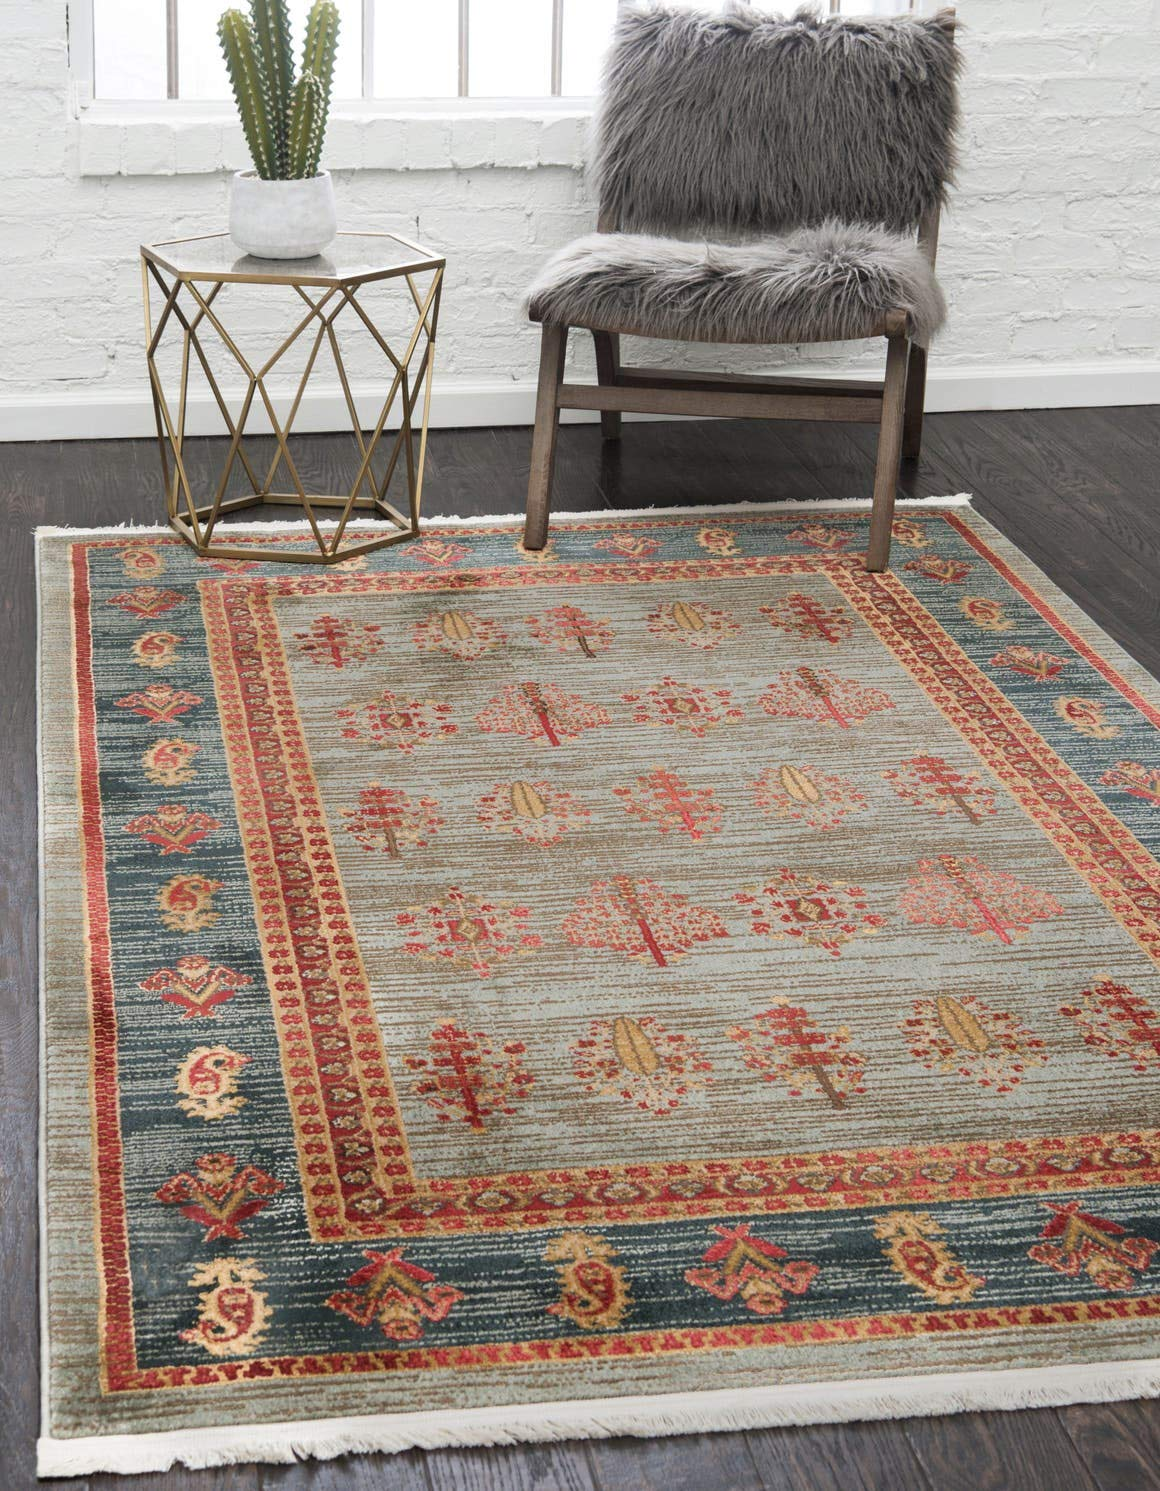 Unique Loom Fars Collection Tribal Modern Casual Light Blue Area Rug 6 0 x 9 0